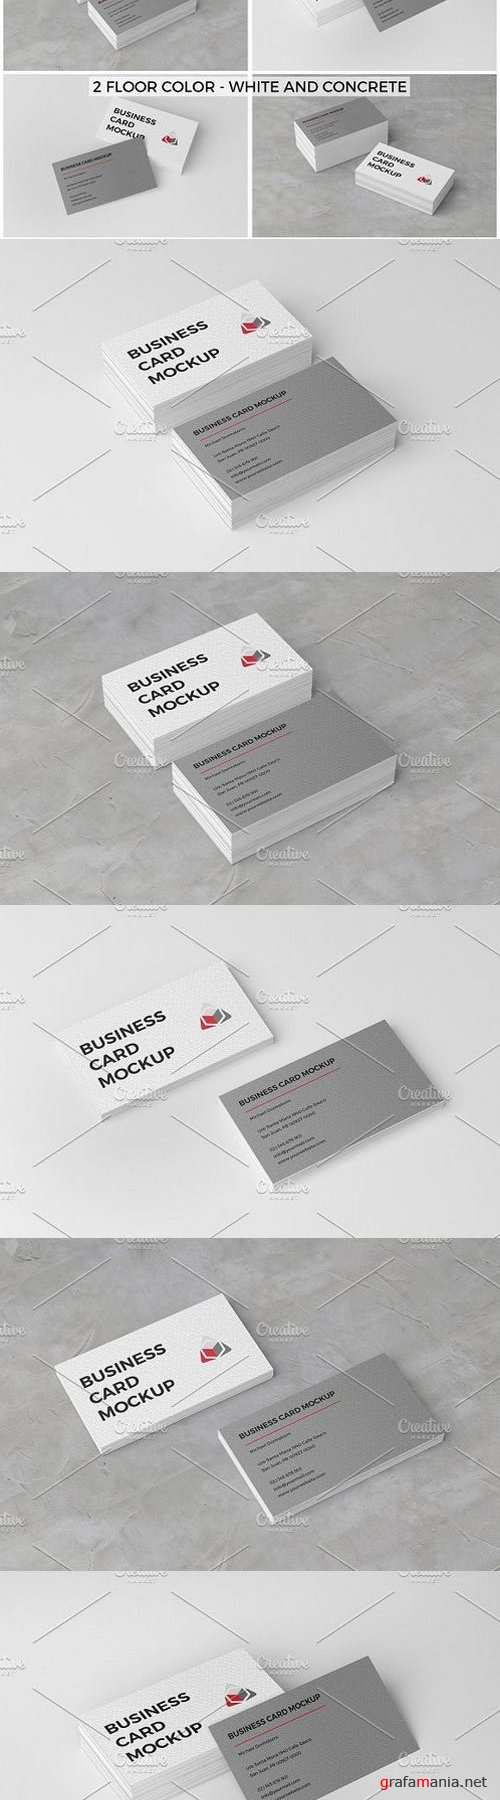 Business Card Mockup 883303